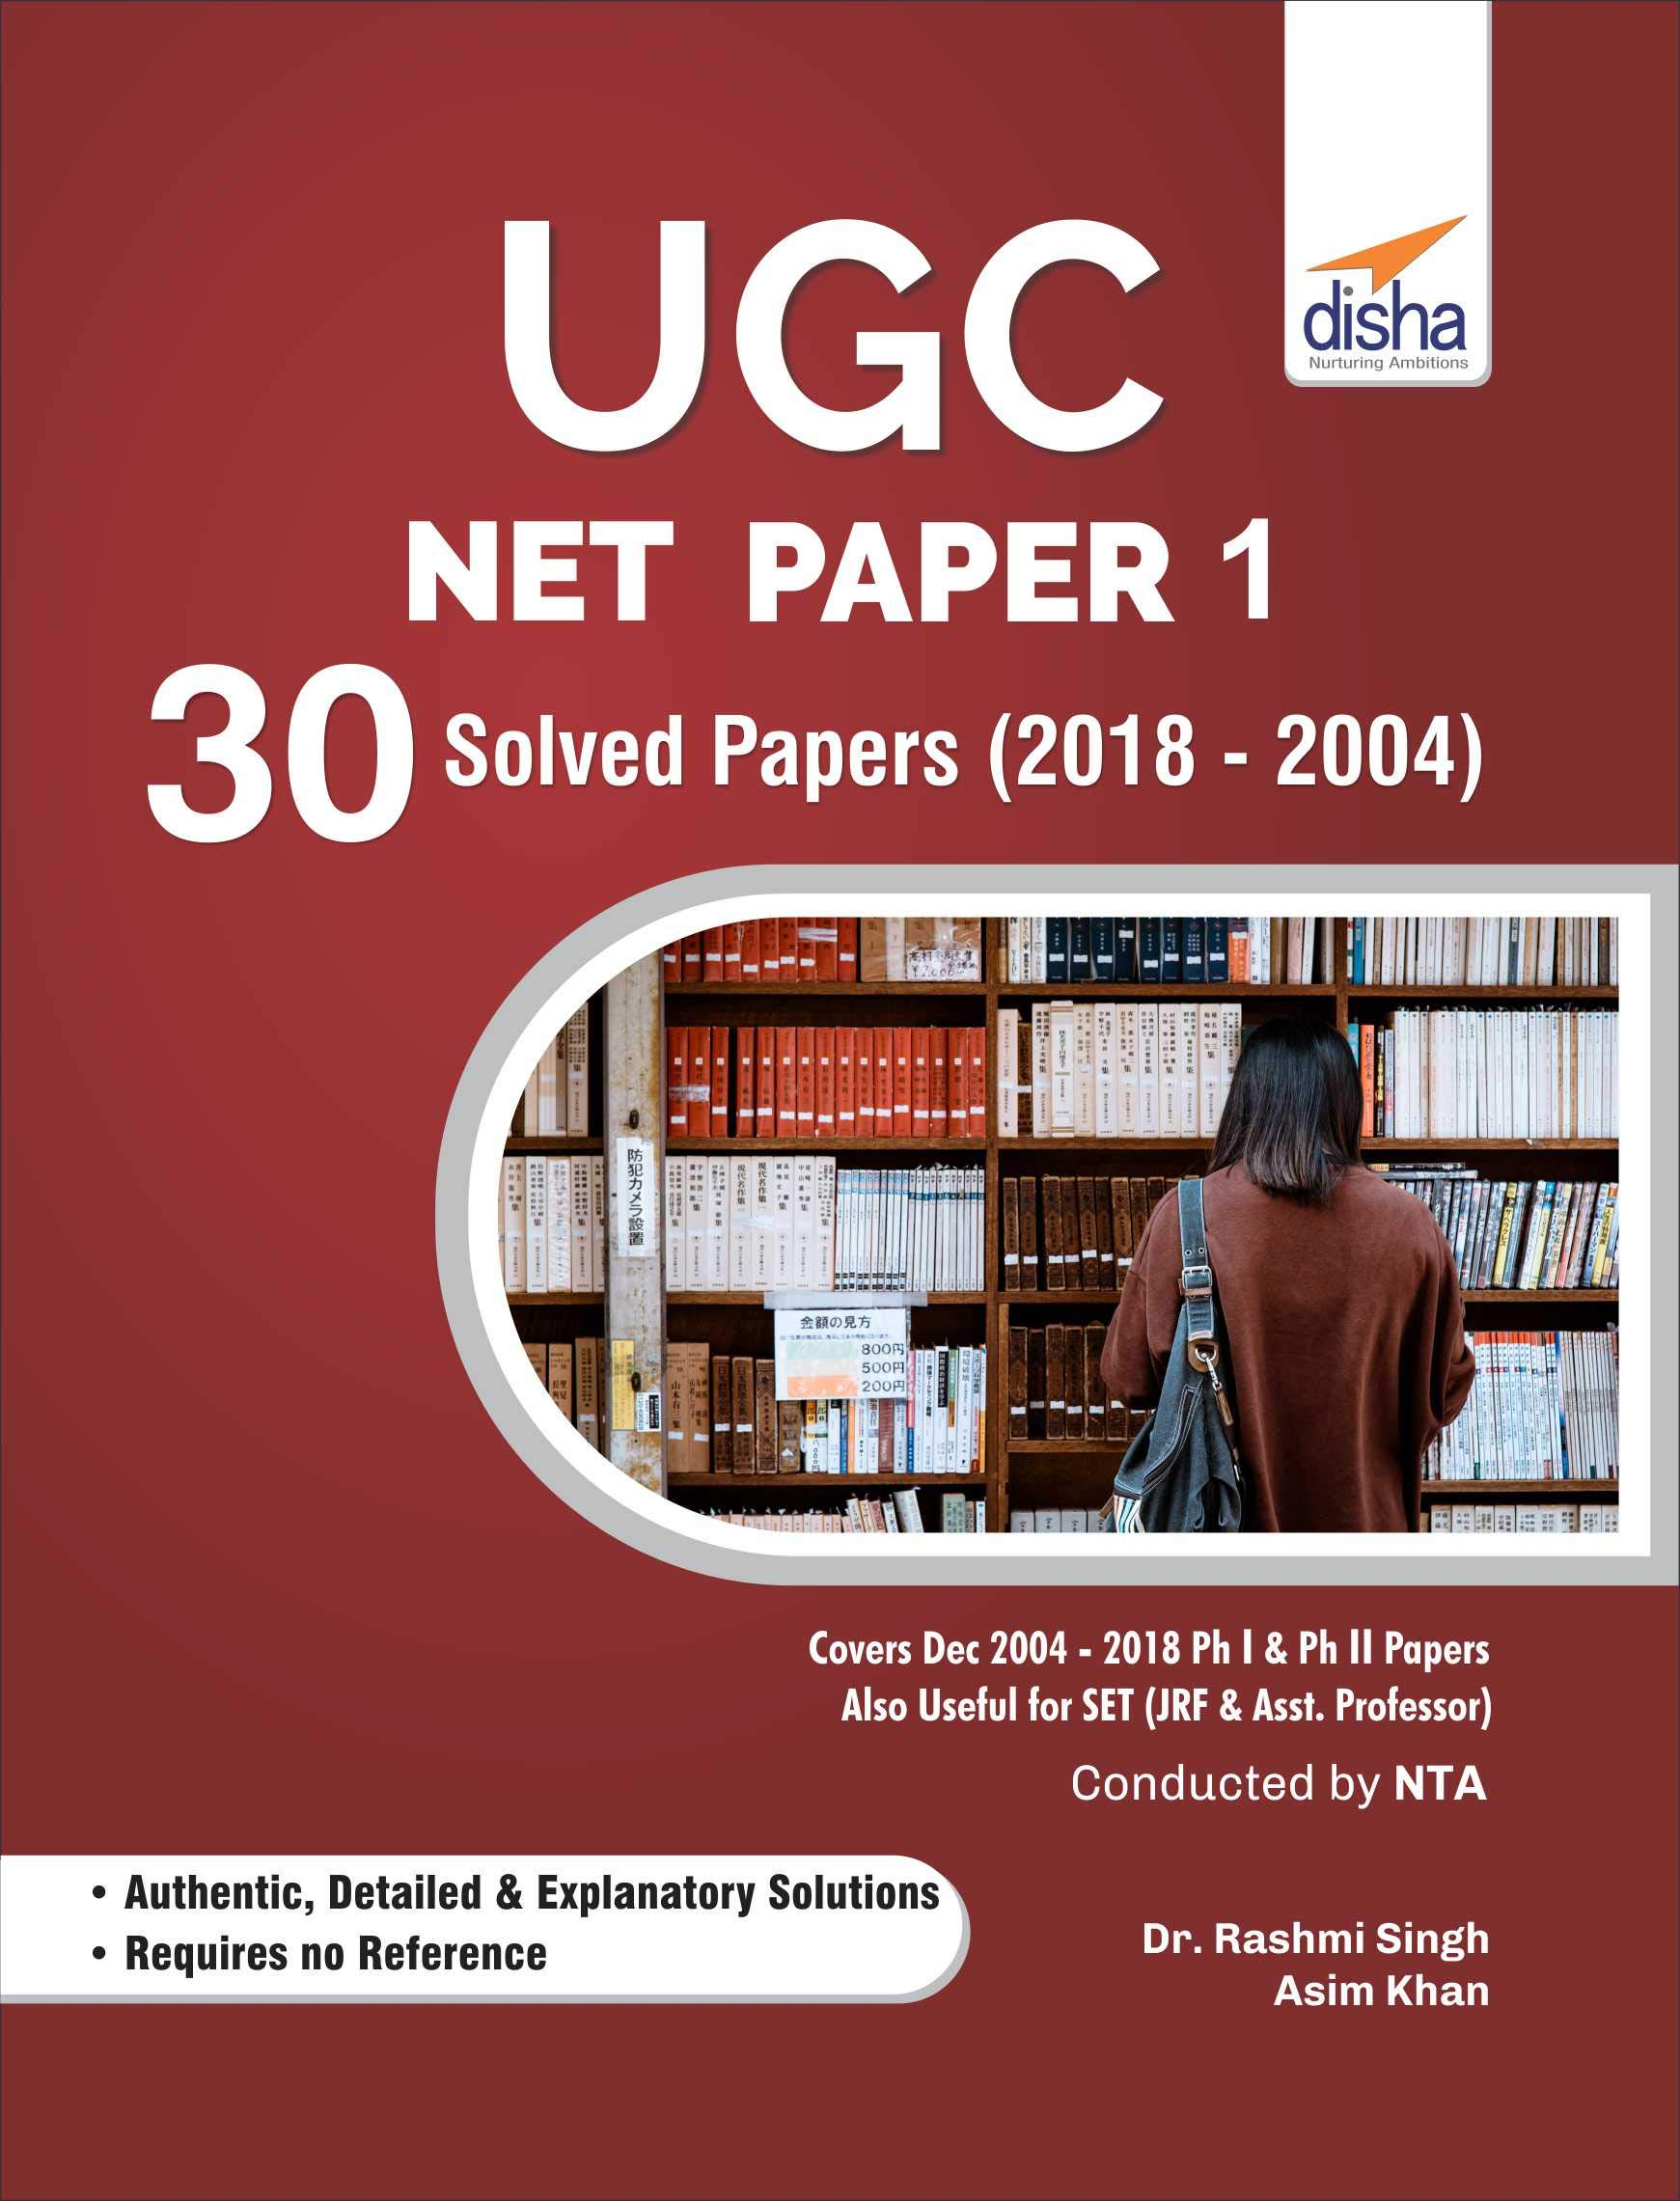 Buy UGC NET Paper 1 - 30 Solved Papers (2004 to 2018) Book Online at